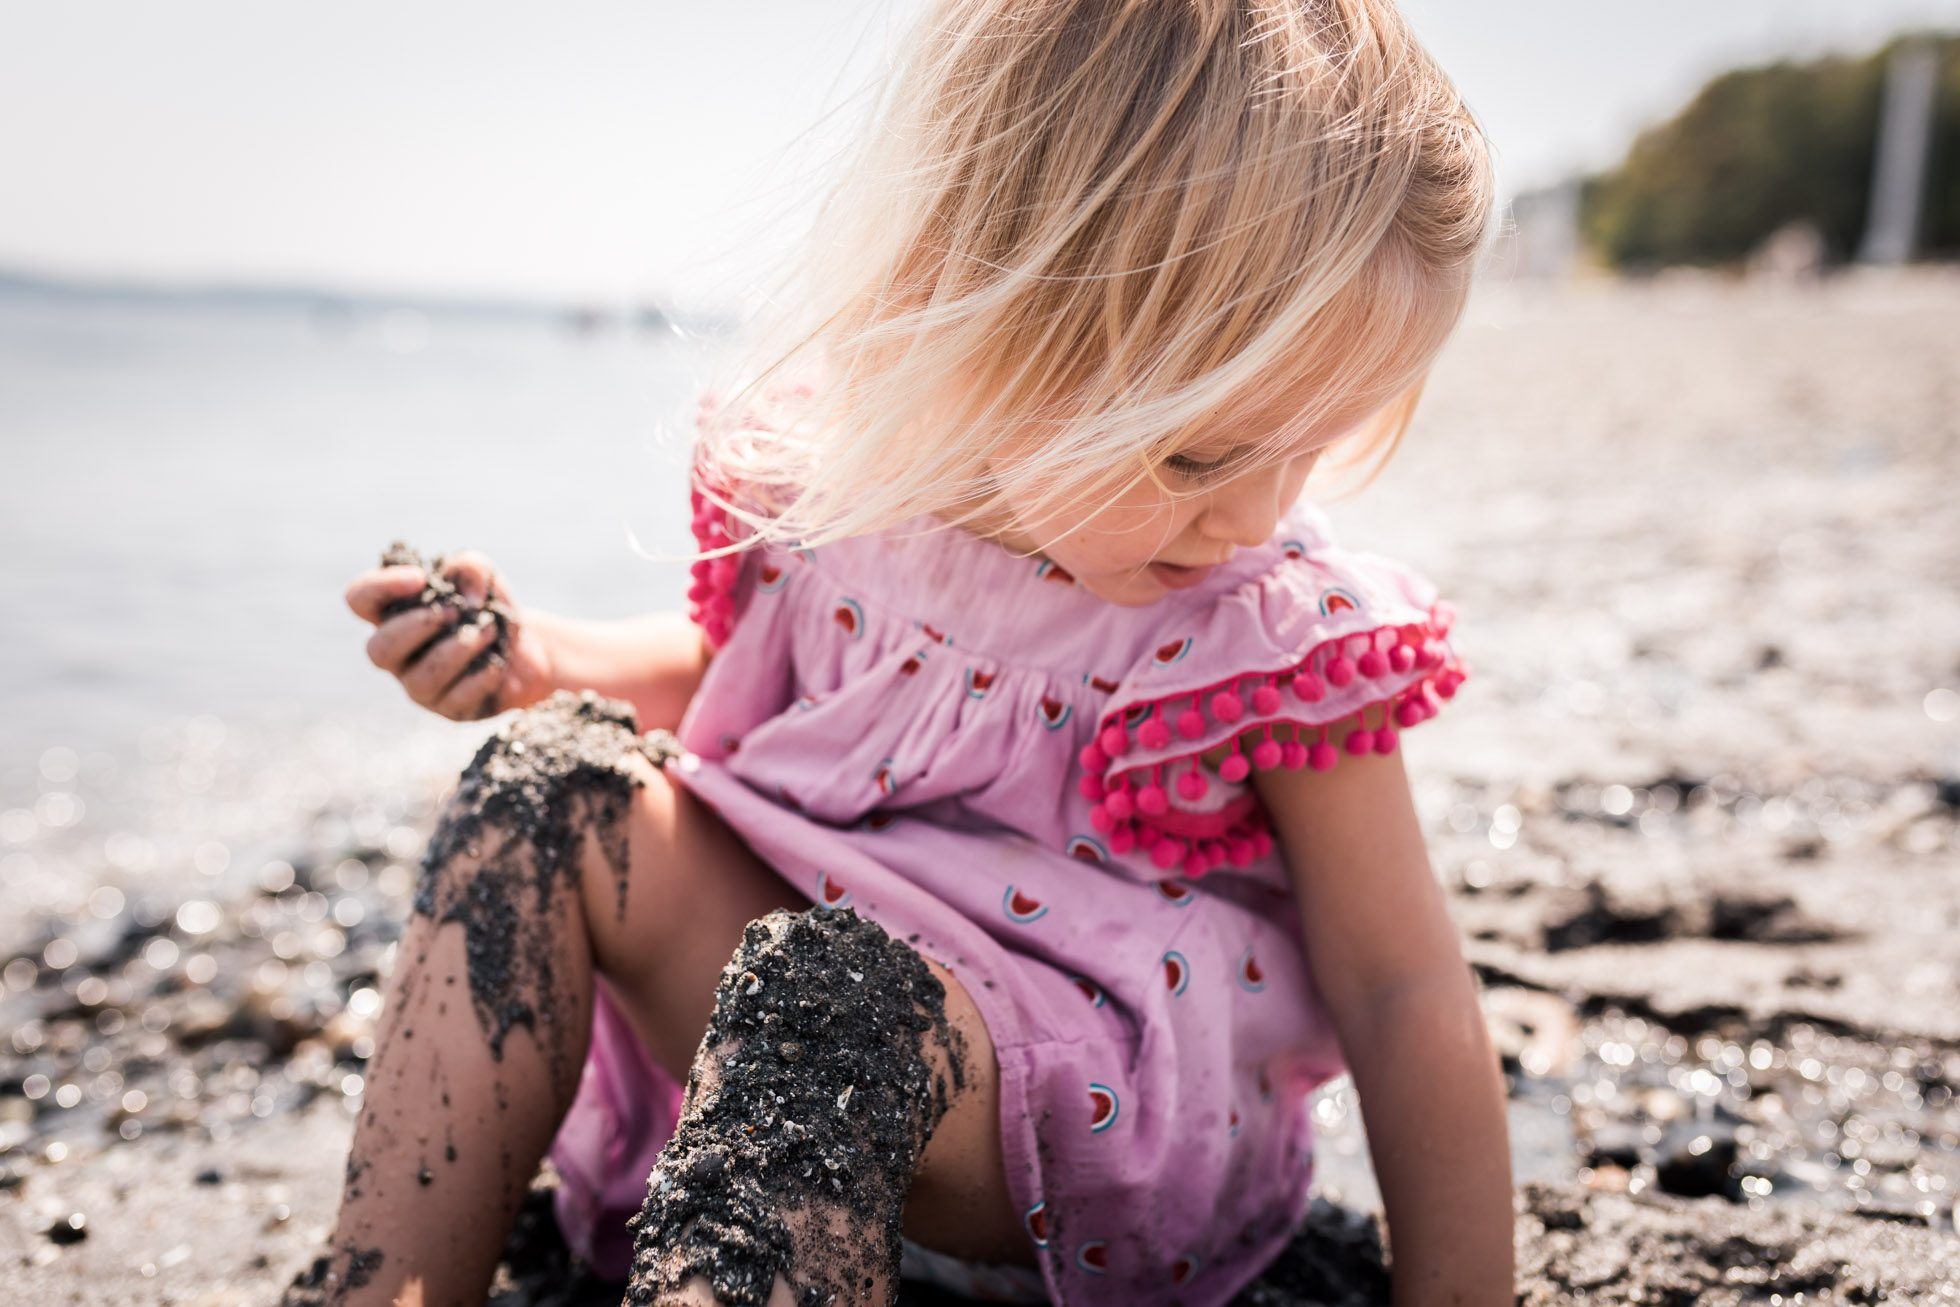 Little girl playing in sand on beach